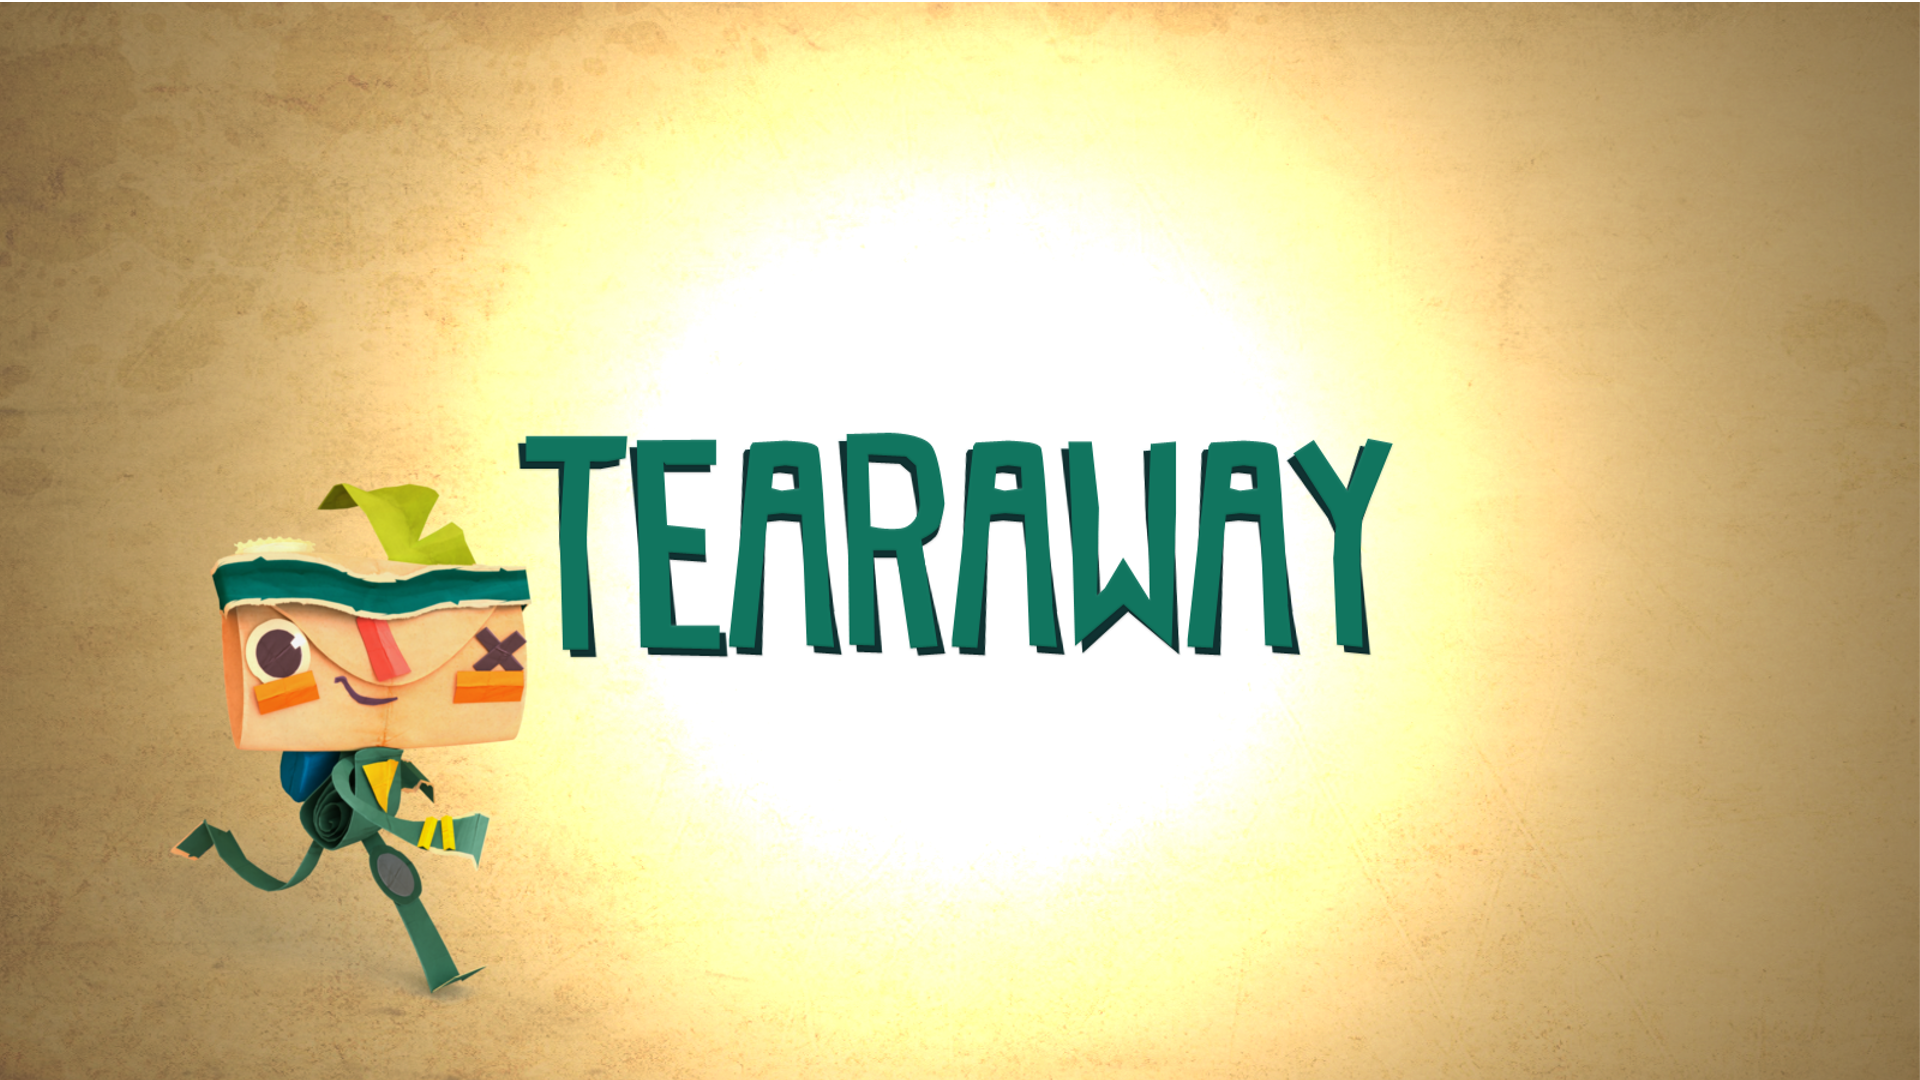 tearaway_desktop_background_by_moleynators-d5biqjr